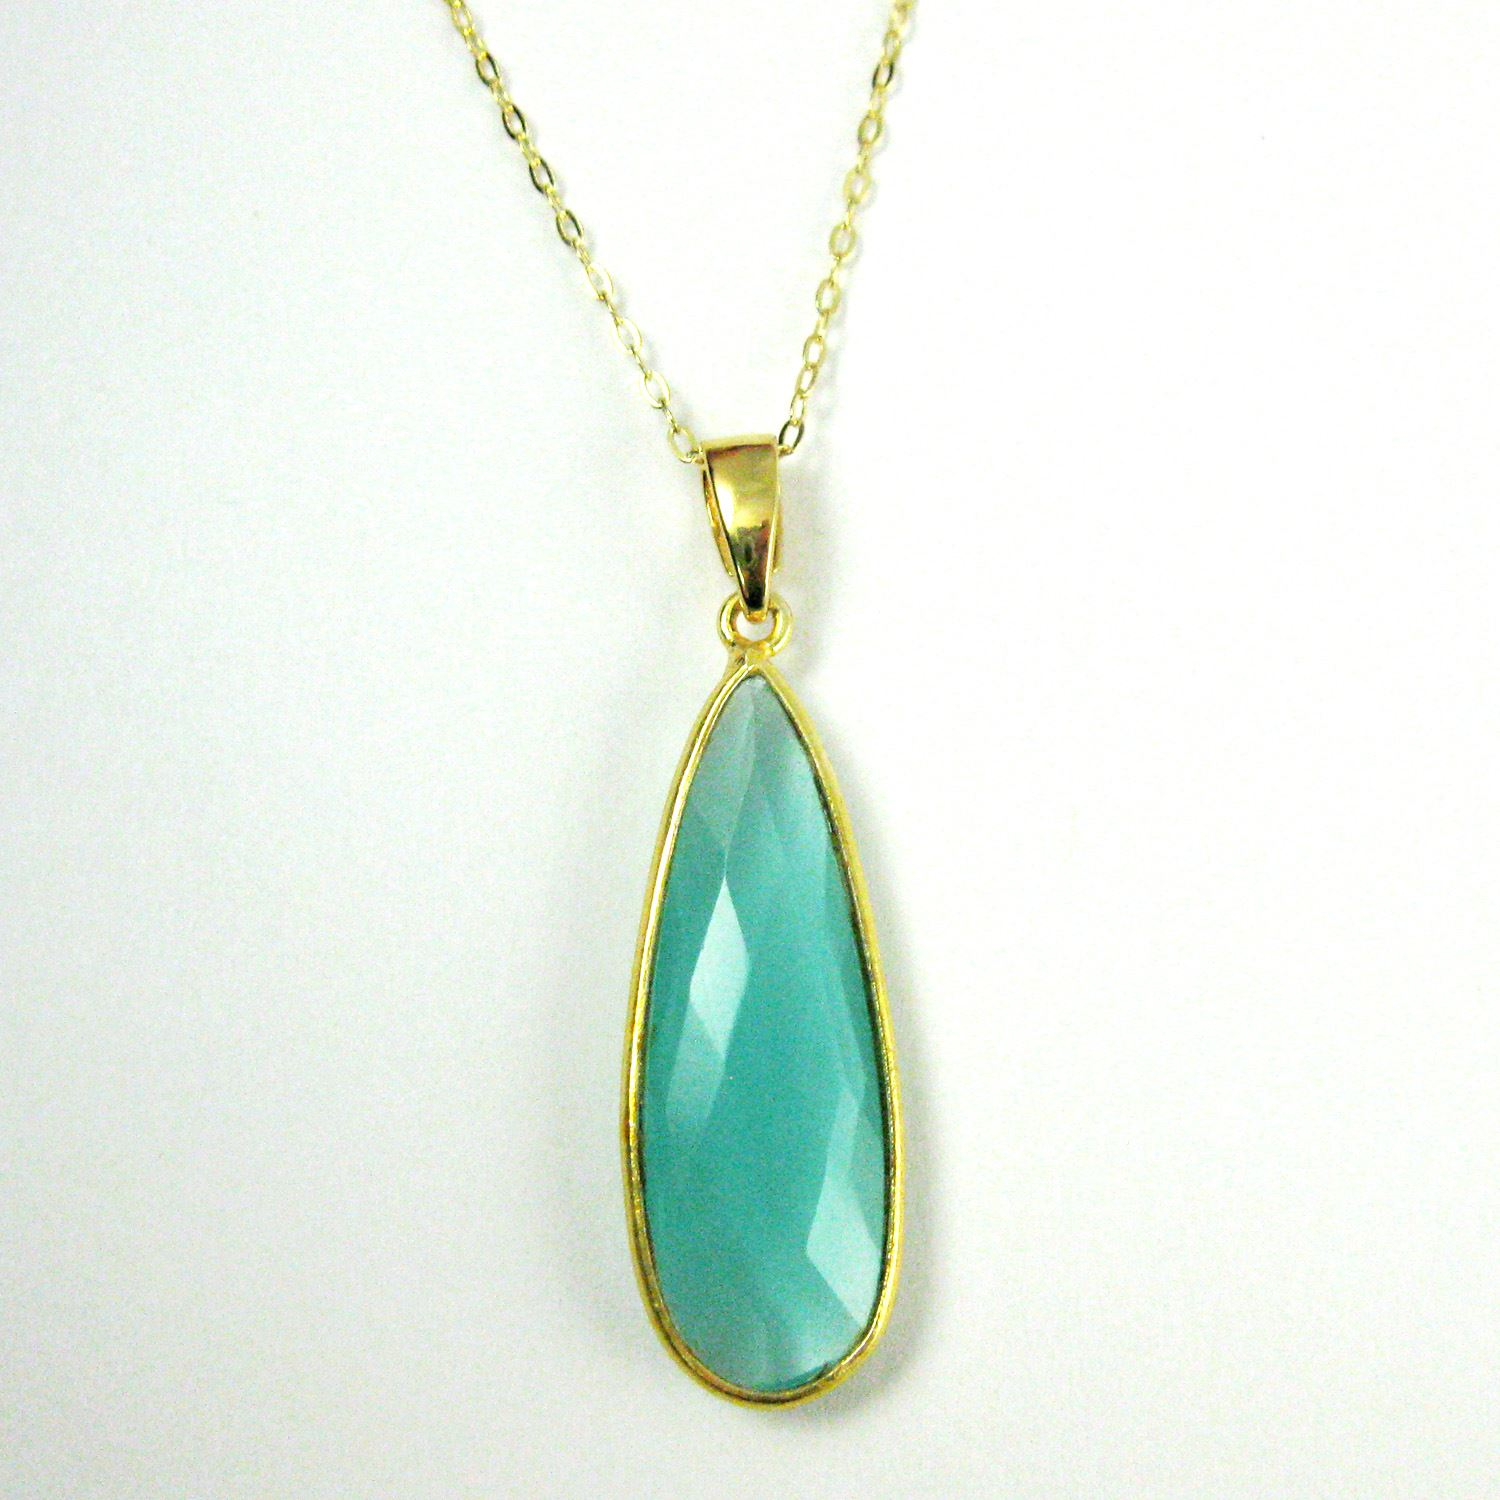 Bezel Gemstone Pendant with Bail - Gold plated Sterling Silver Elongated Teardrpo Gem Pendant - Ready for Necklace - 40mm - Peru Chalcedony